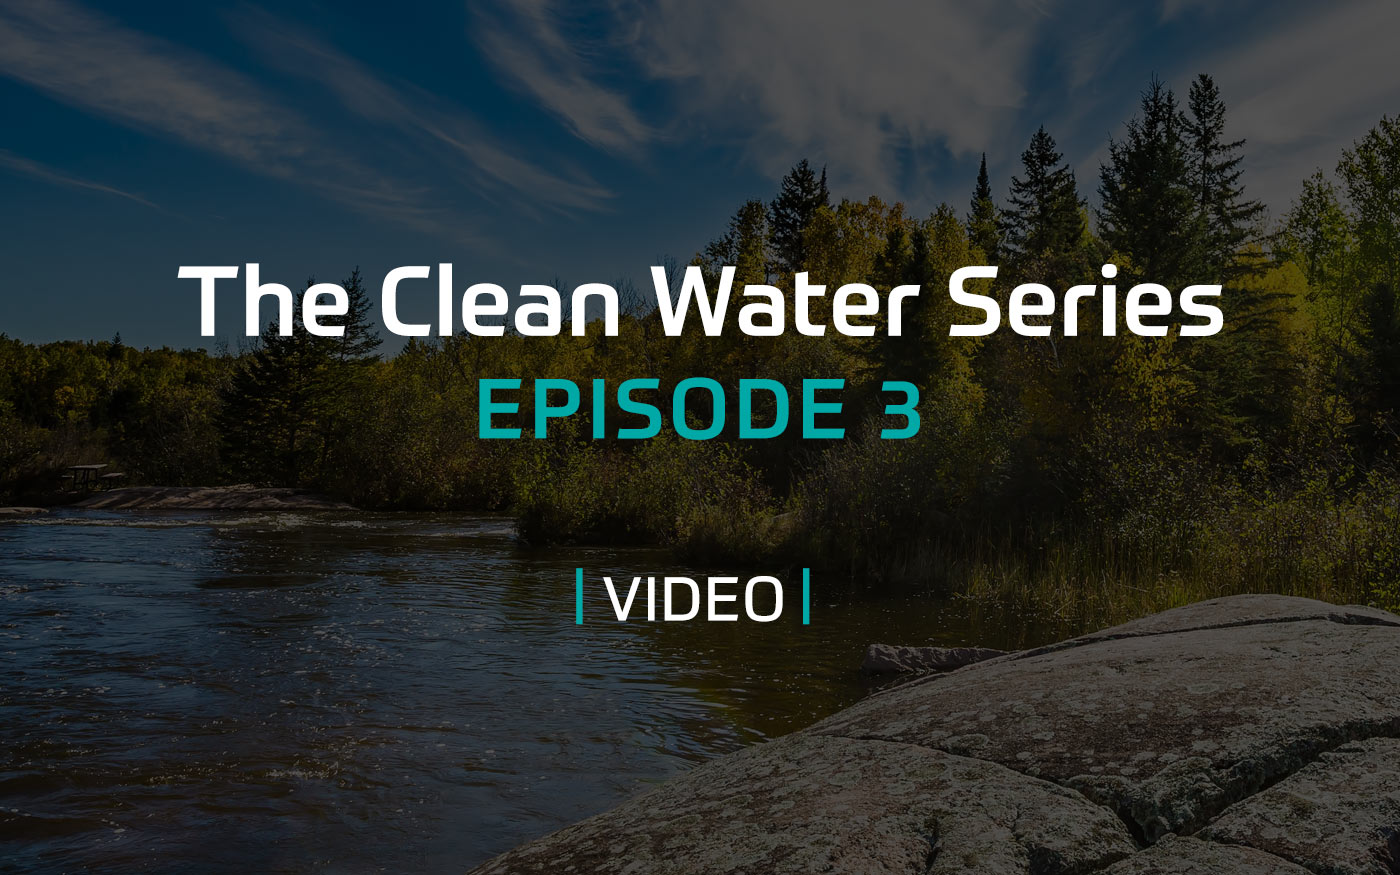 The Clean Water Series - Episode 3